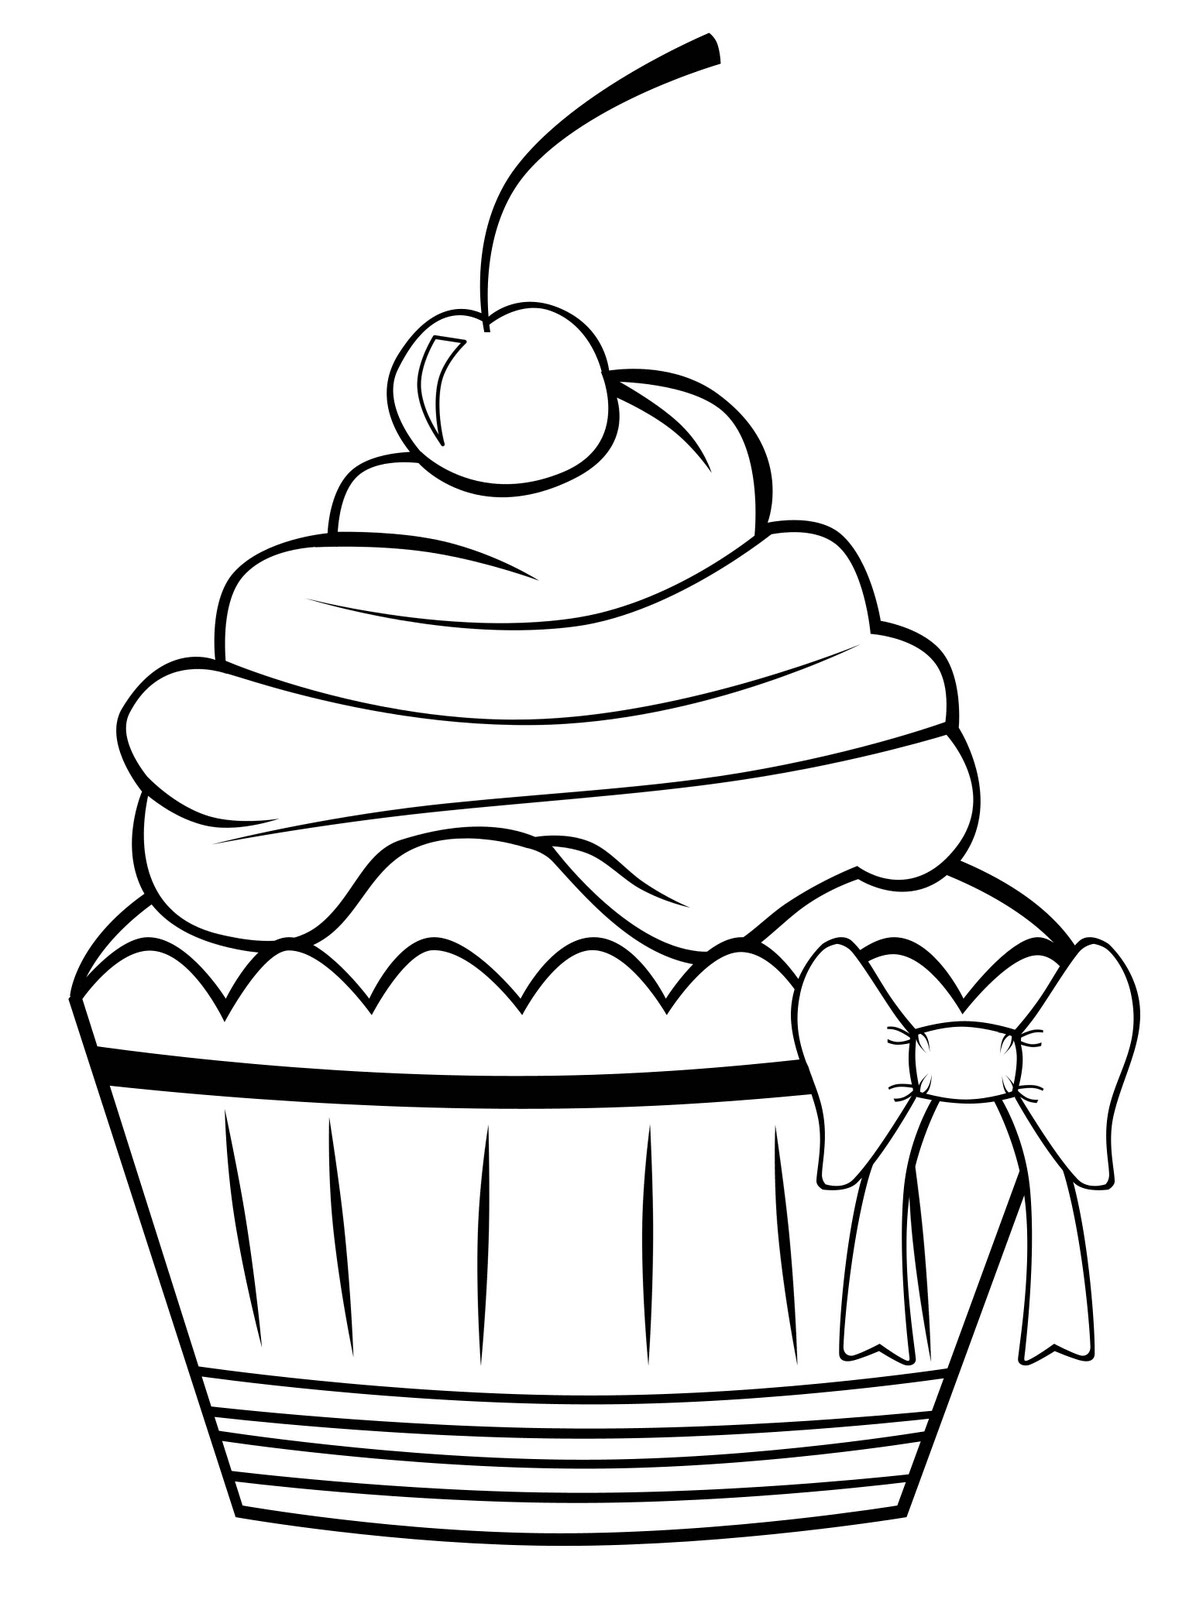 1196x1600 Fancy Cake Coloring Pages On Coloring Pages Online With Cake